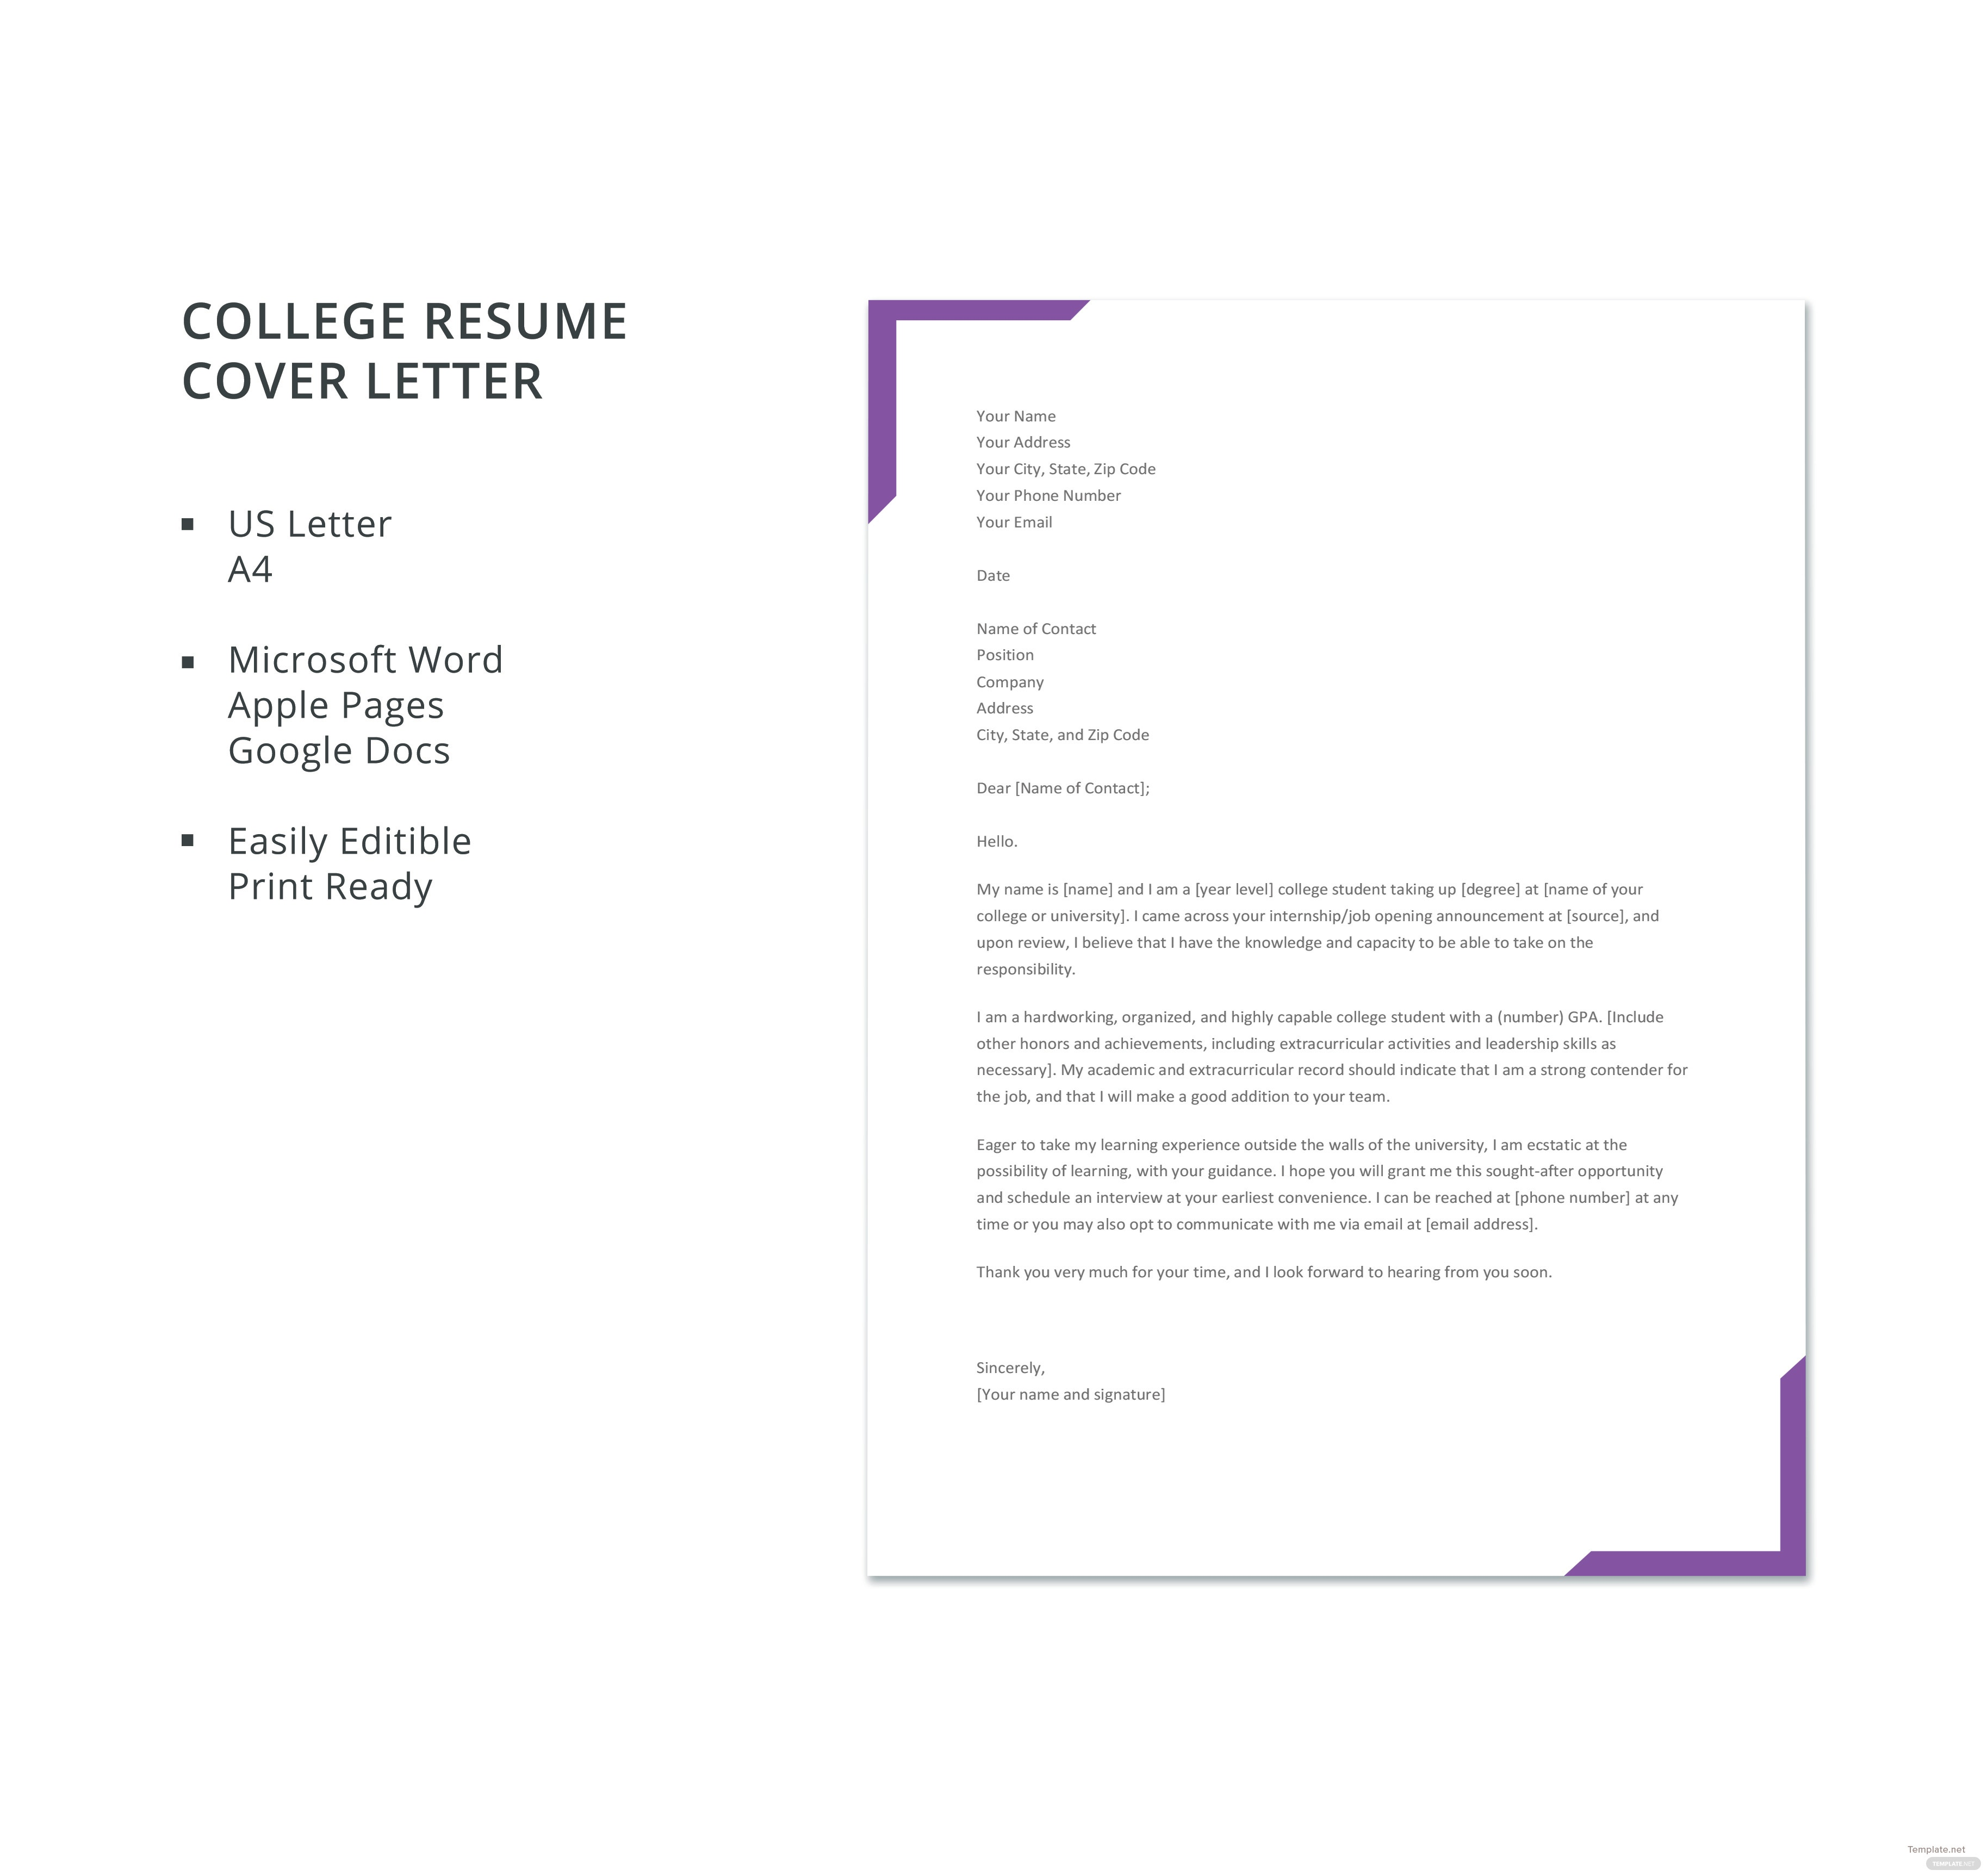 Free College Resume Cover Letter Template In Microsoft